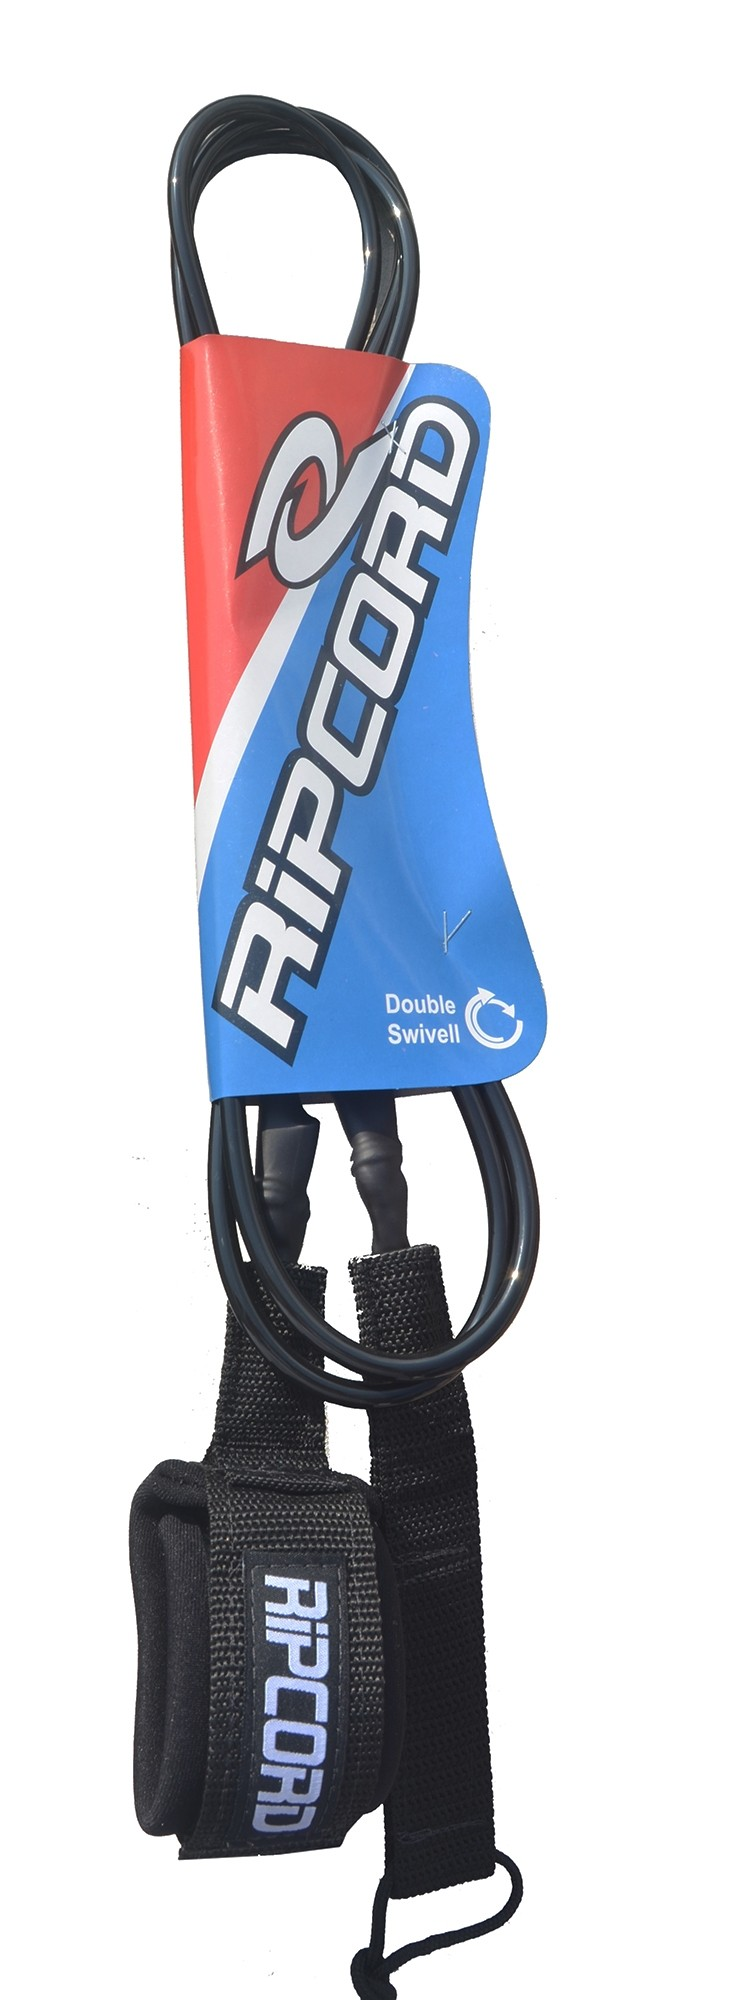 Leash Stand Up Paddle 12'0'' x 8.0 mm. - Tornozelo - RipCord | Prancharia